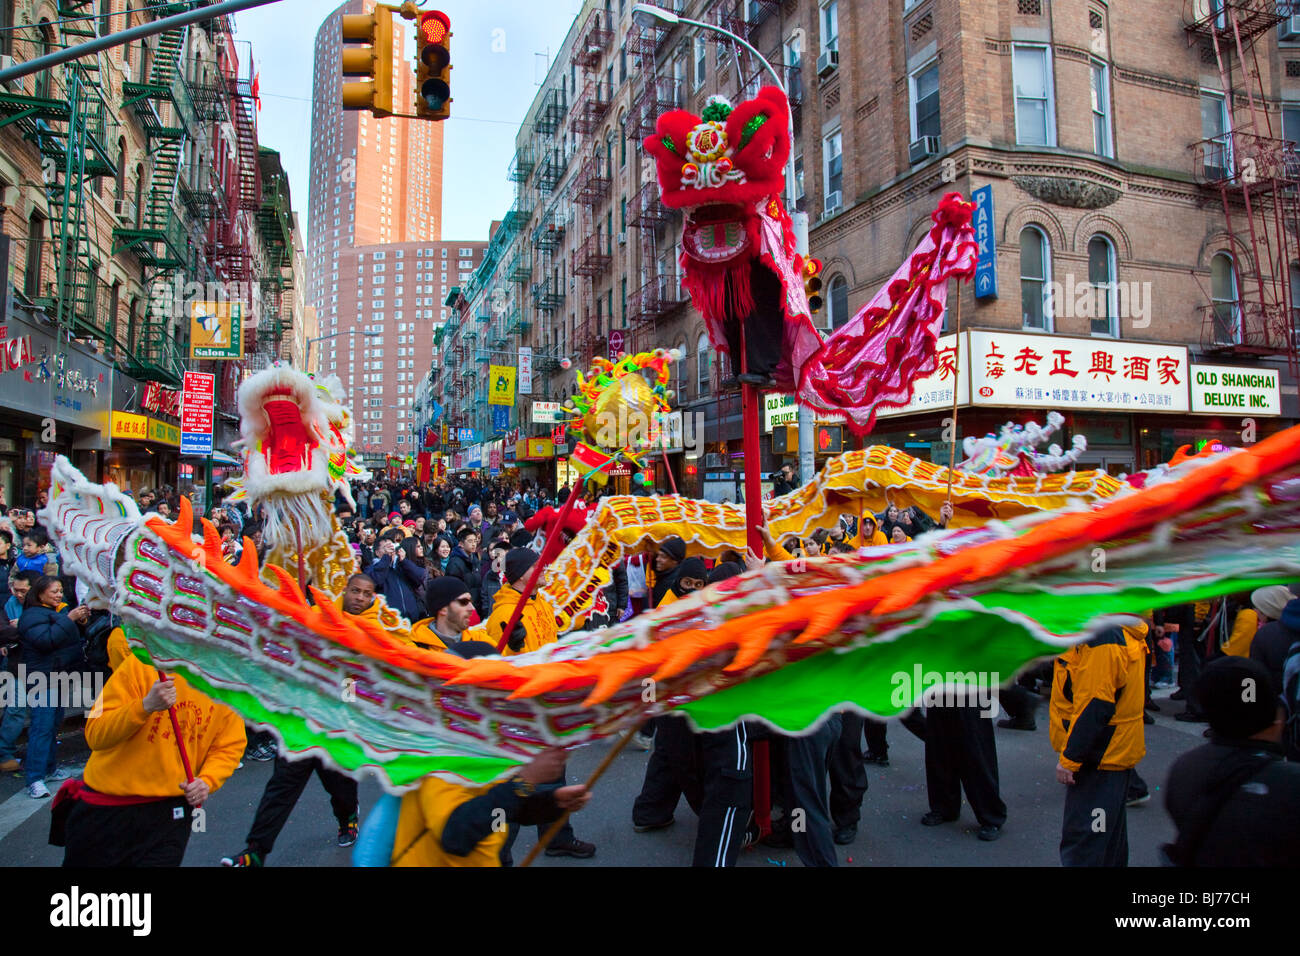 Chinese or Lunar New Year in Chinatown, Manhattan, New York City - Stock Image